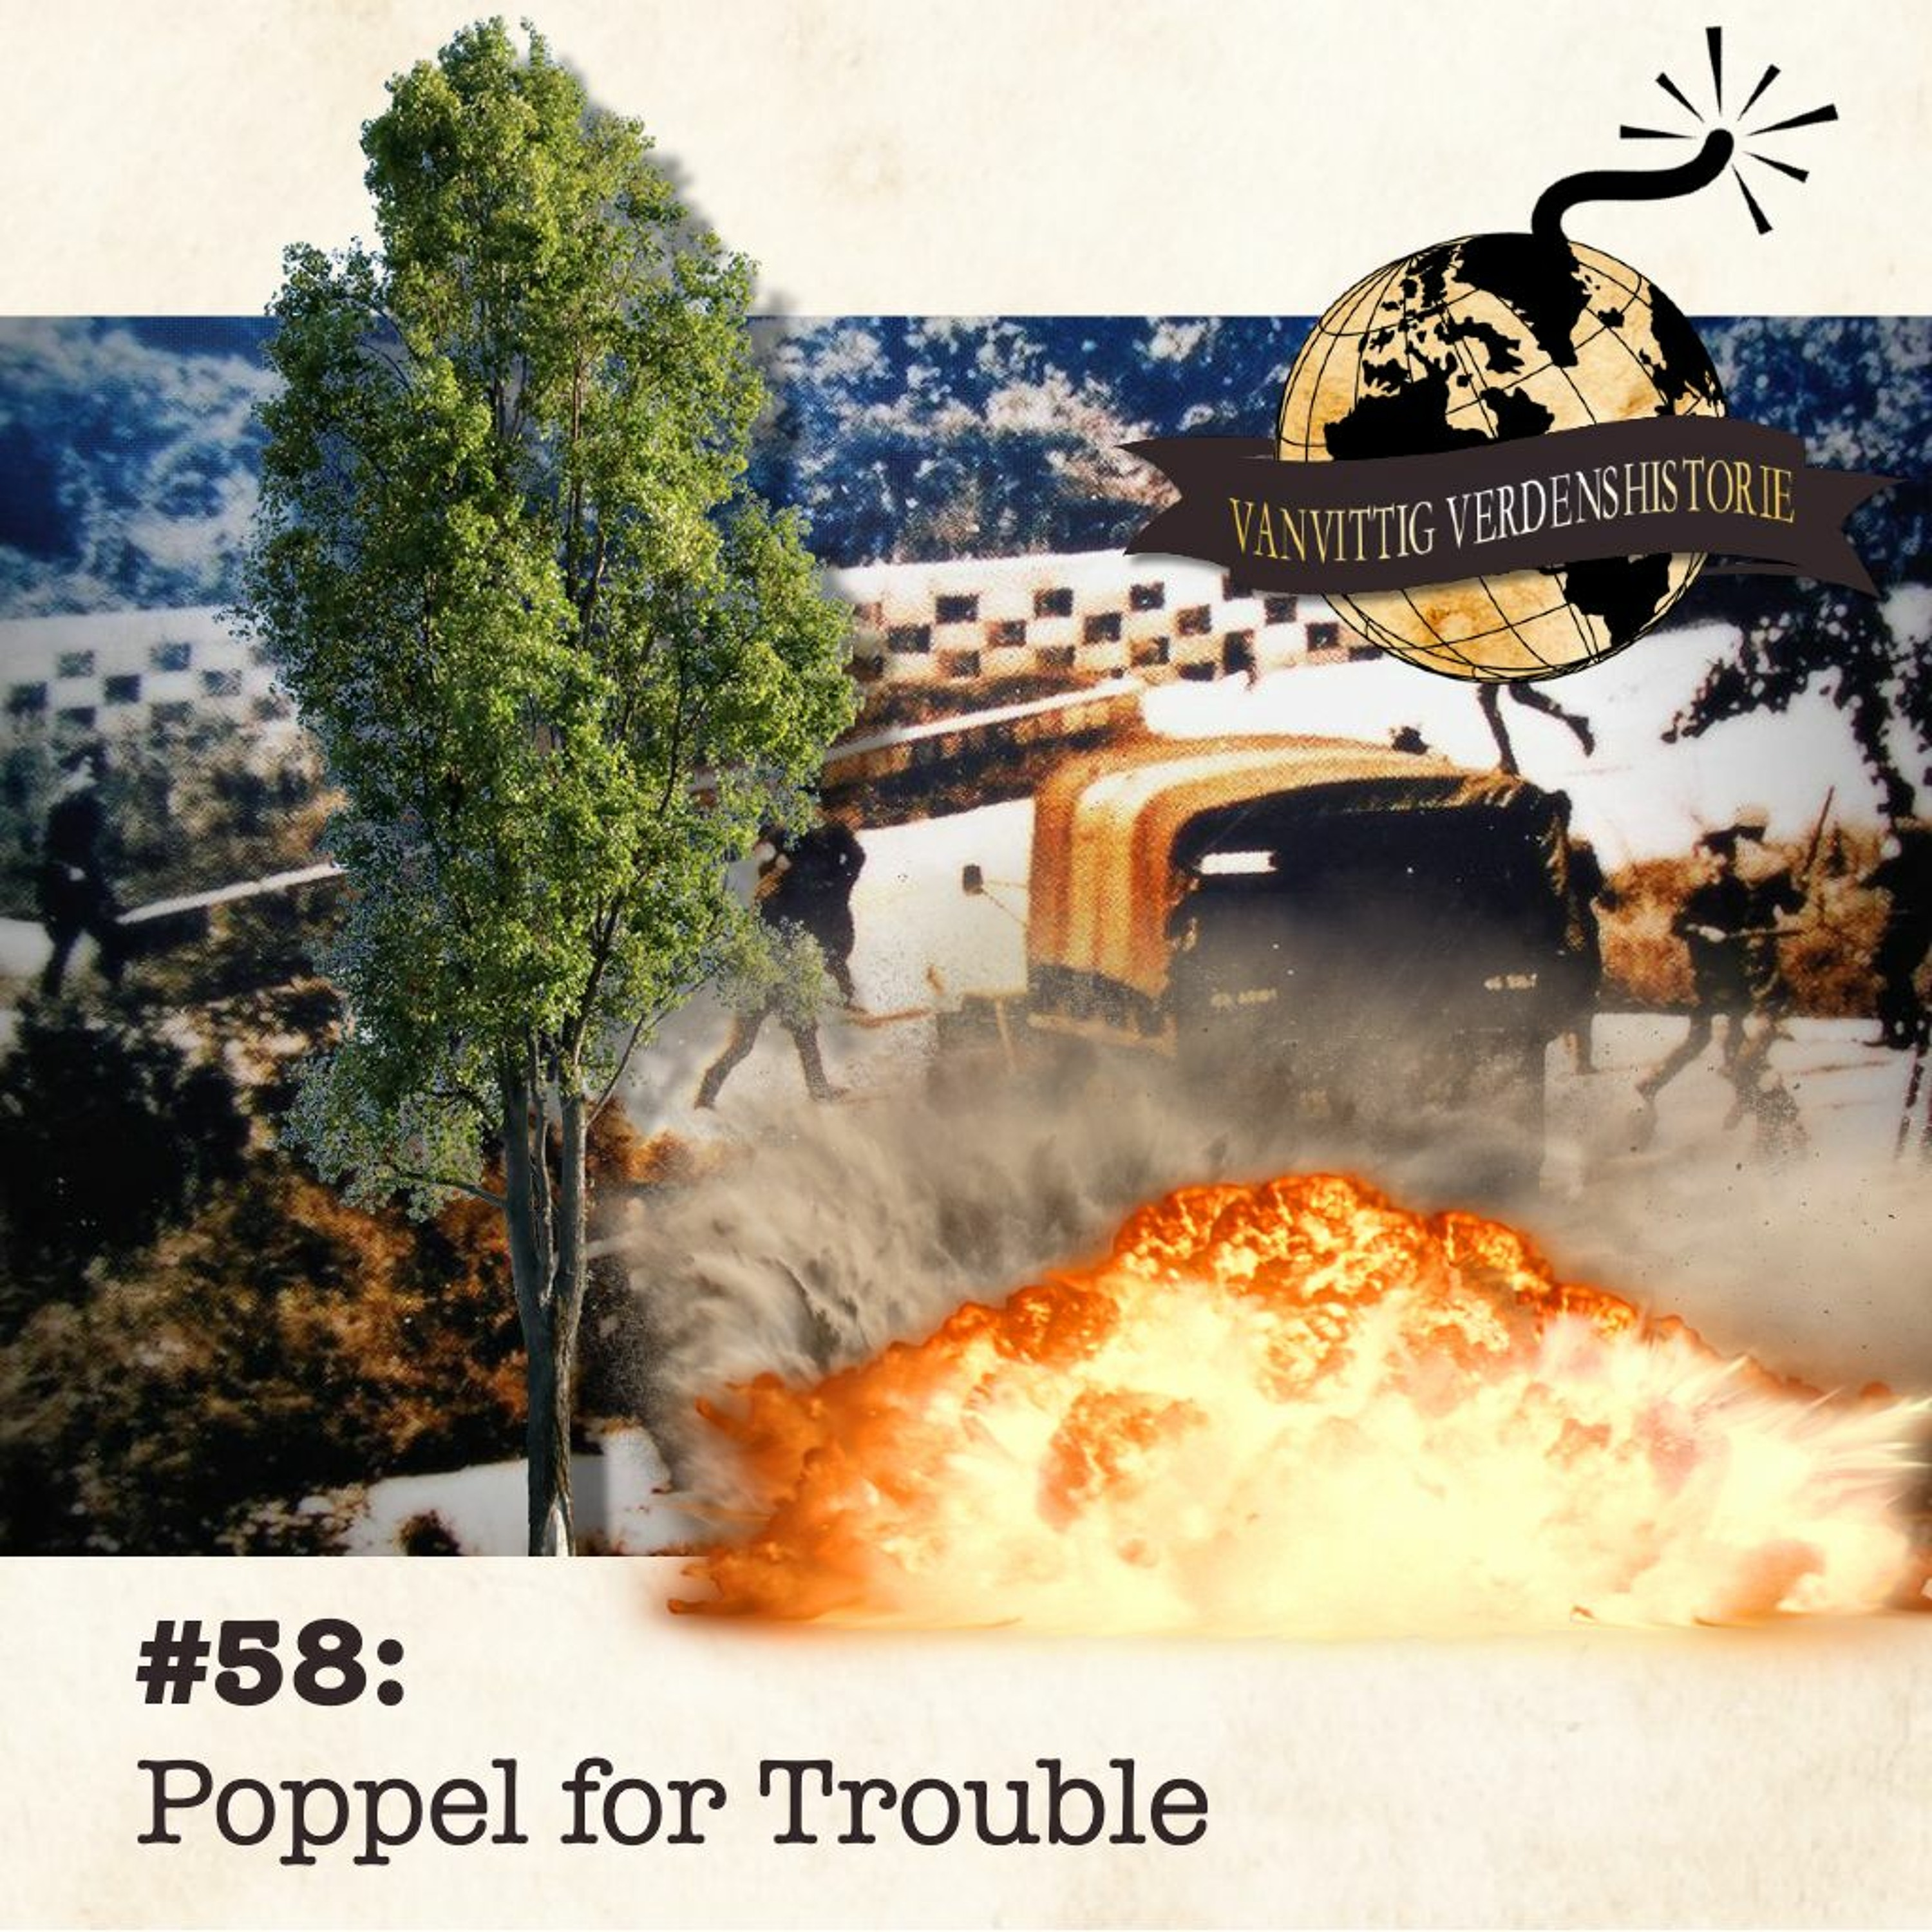 #58: Poppel for Trouble